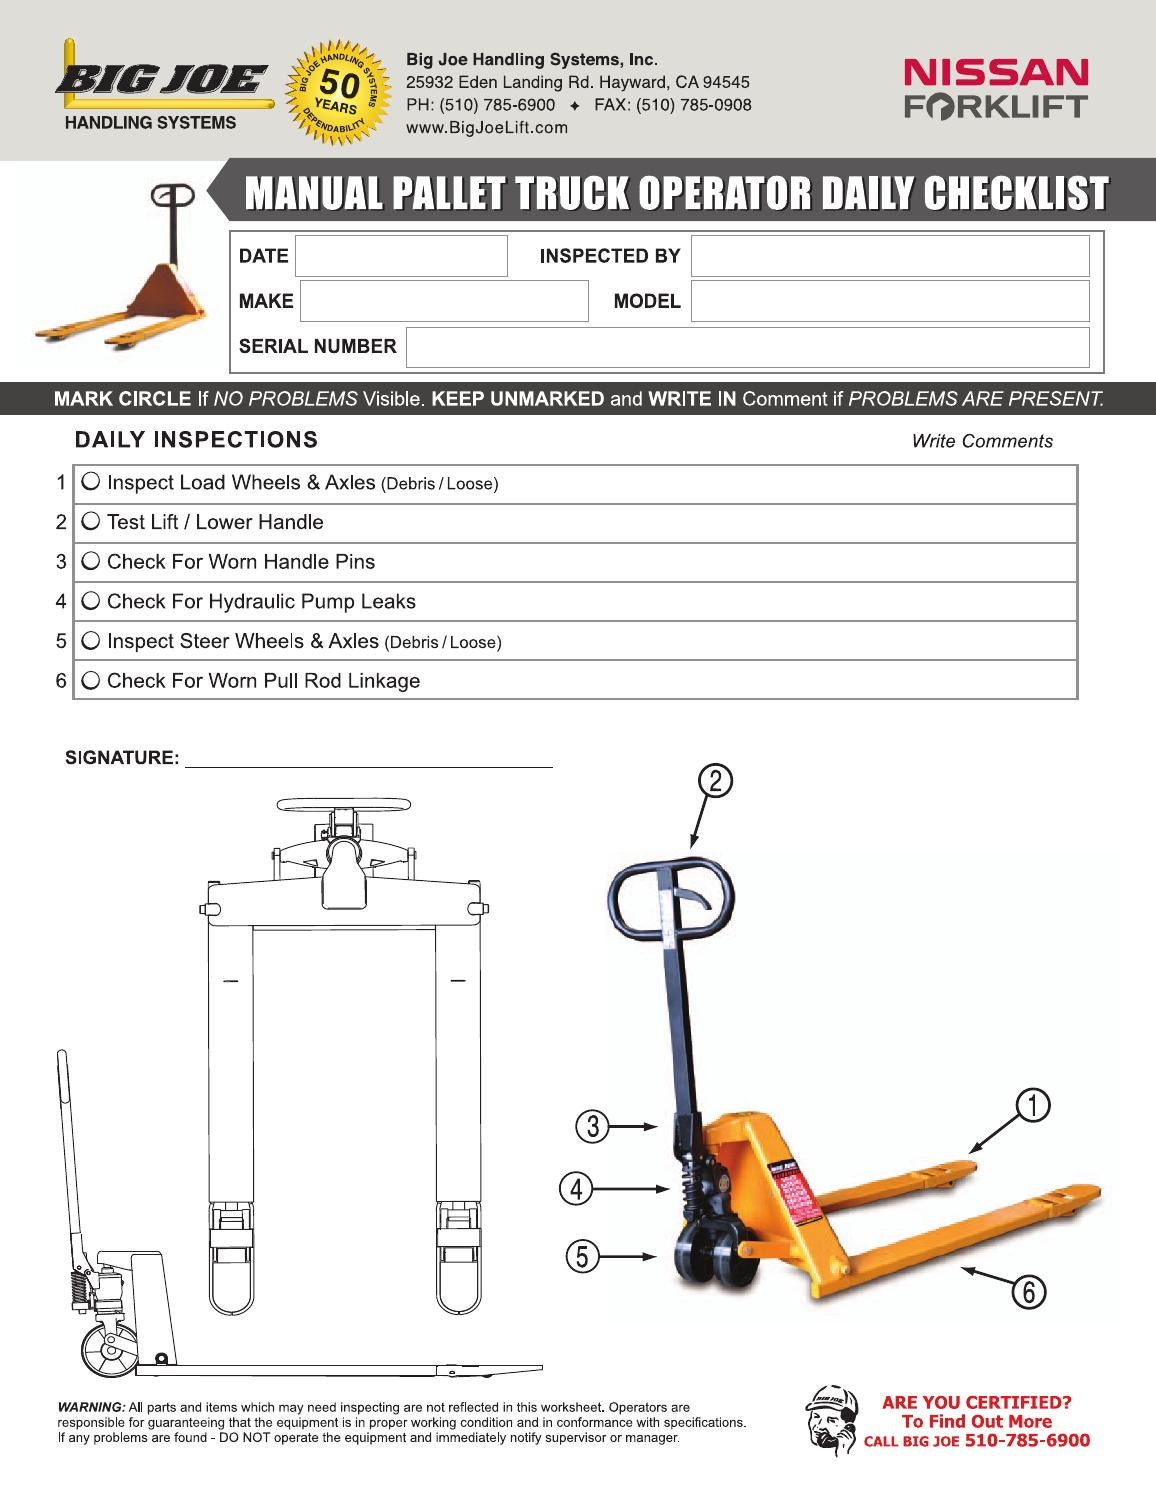 Electric Hydraulic Pump >> Manual Pallet Jack Operator Checklist by bigjoelift (page 1) - issuu